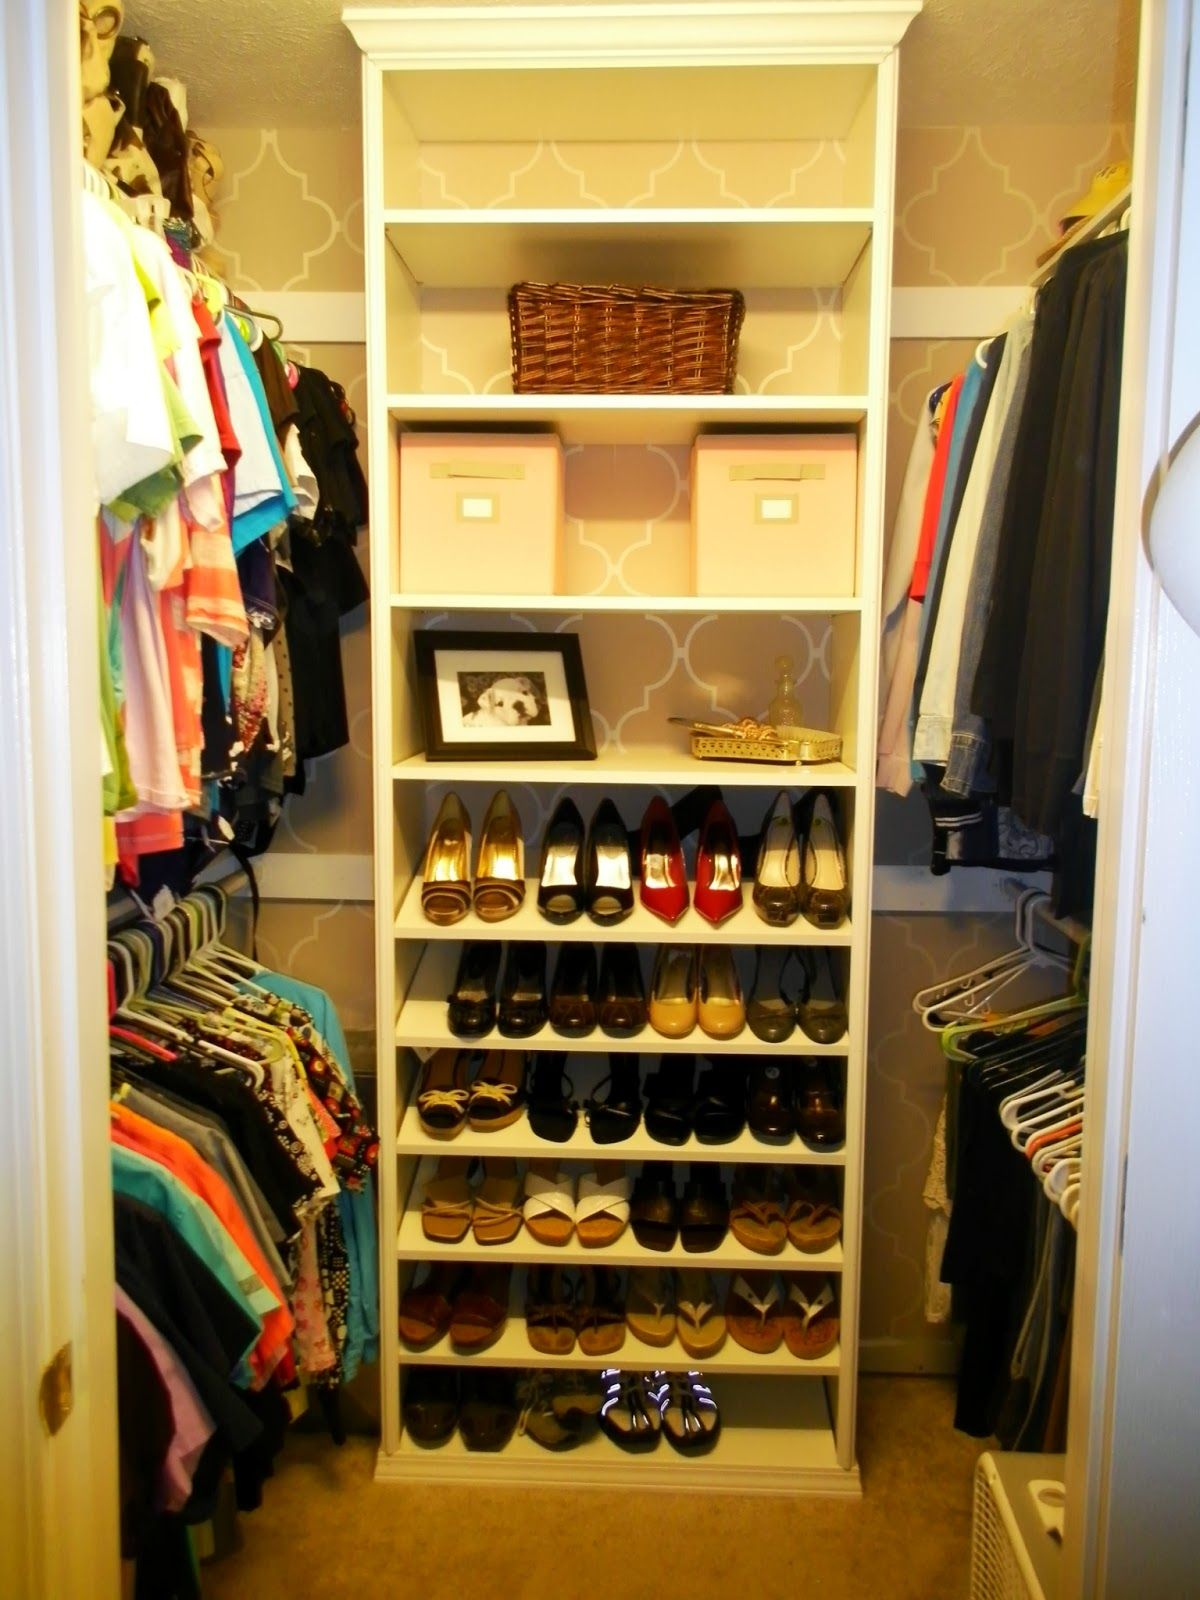 Pics For Diy White Wooden Closet Shoe Storage With Lighting And ..